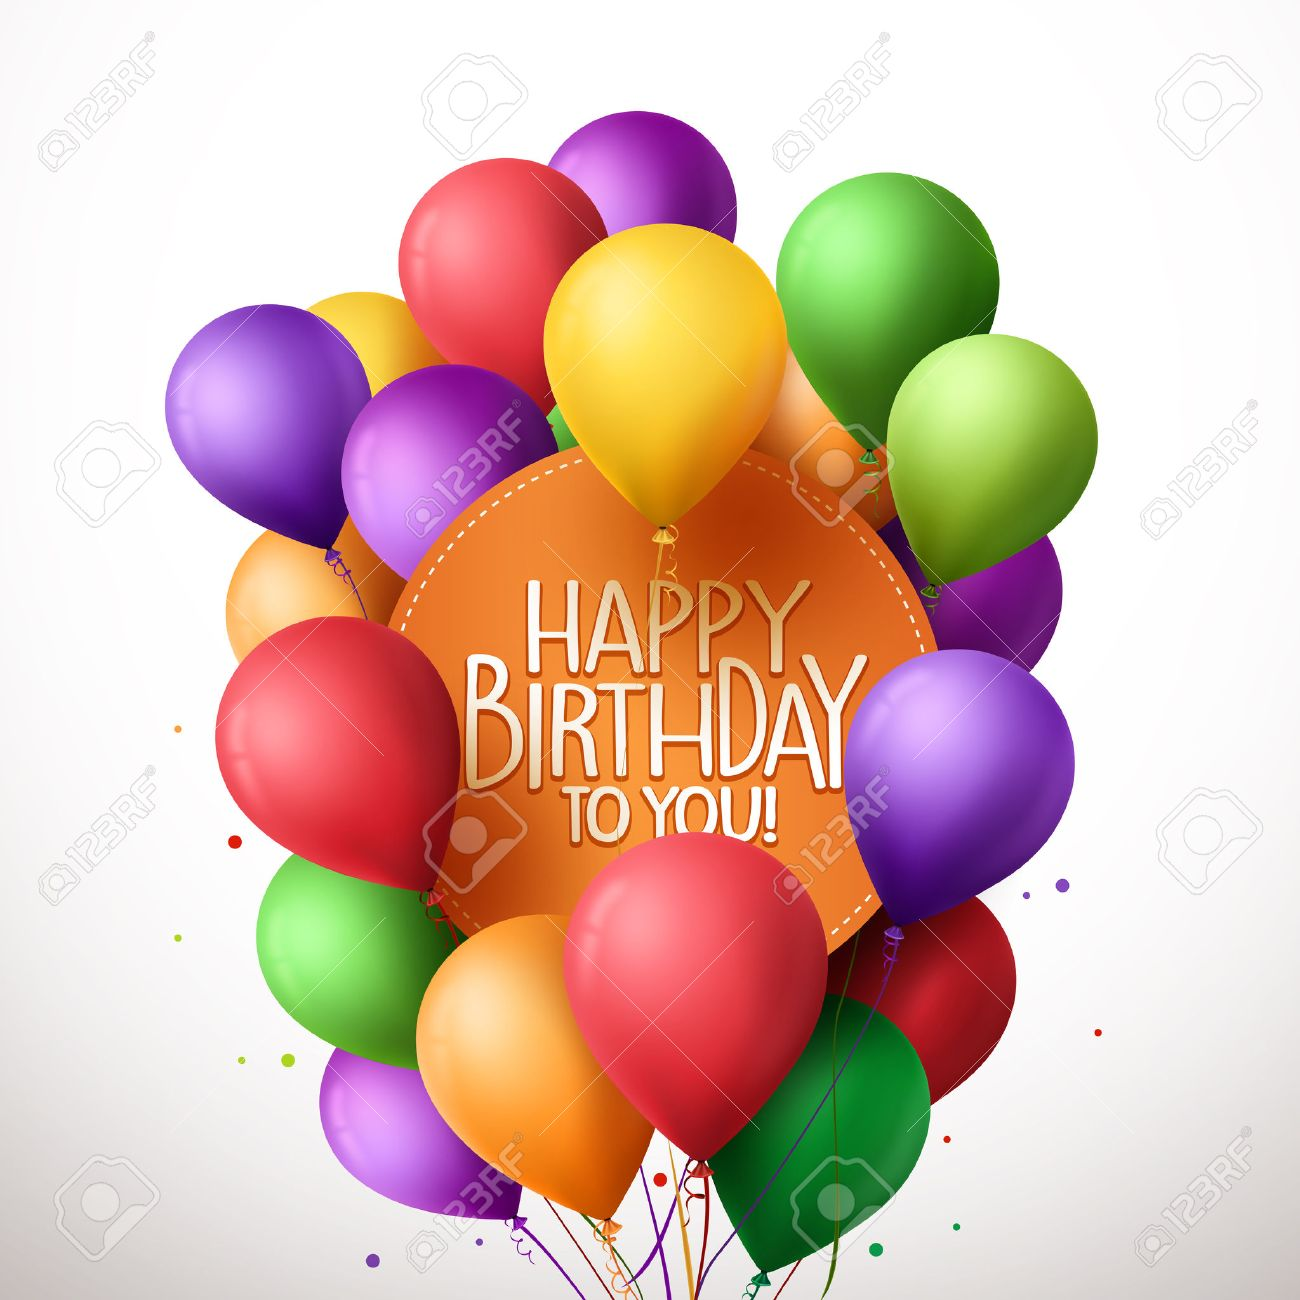 3d Realistic Colorful Bunch of Happy Birthday Balloons Flying for Party and Celebrations With Text in Circle Isolated in White Background. Vector Illustration - 48167518